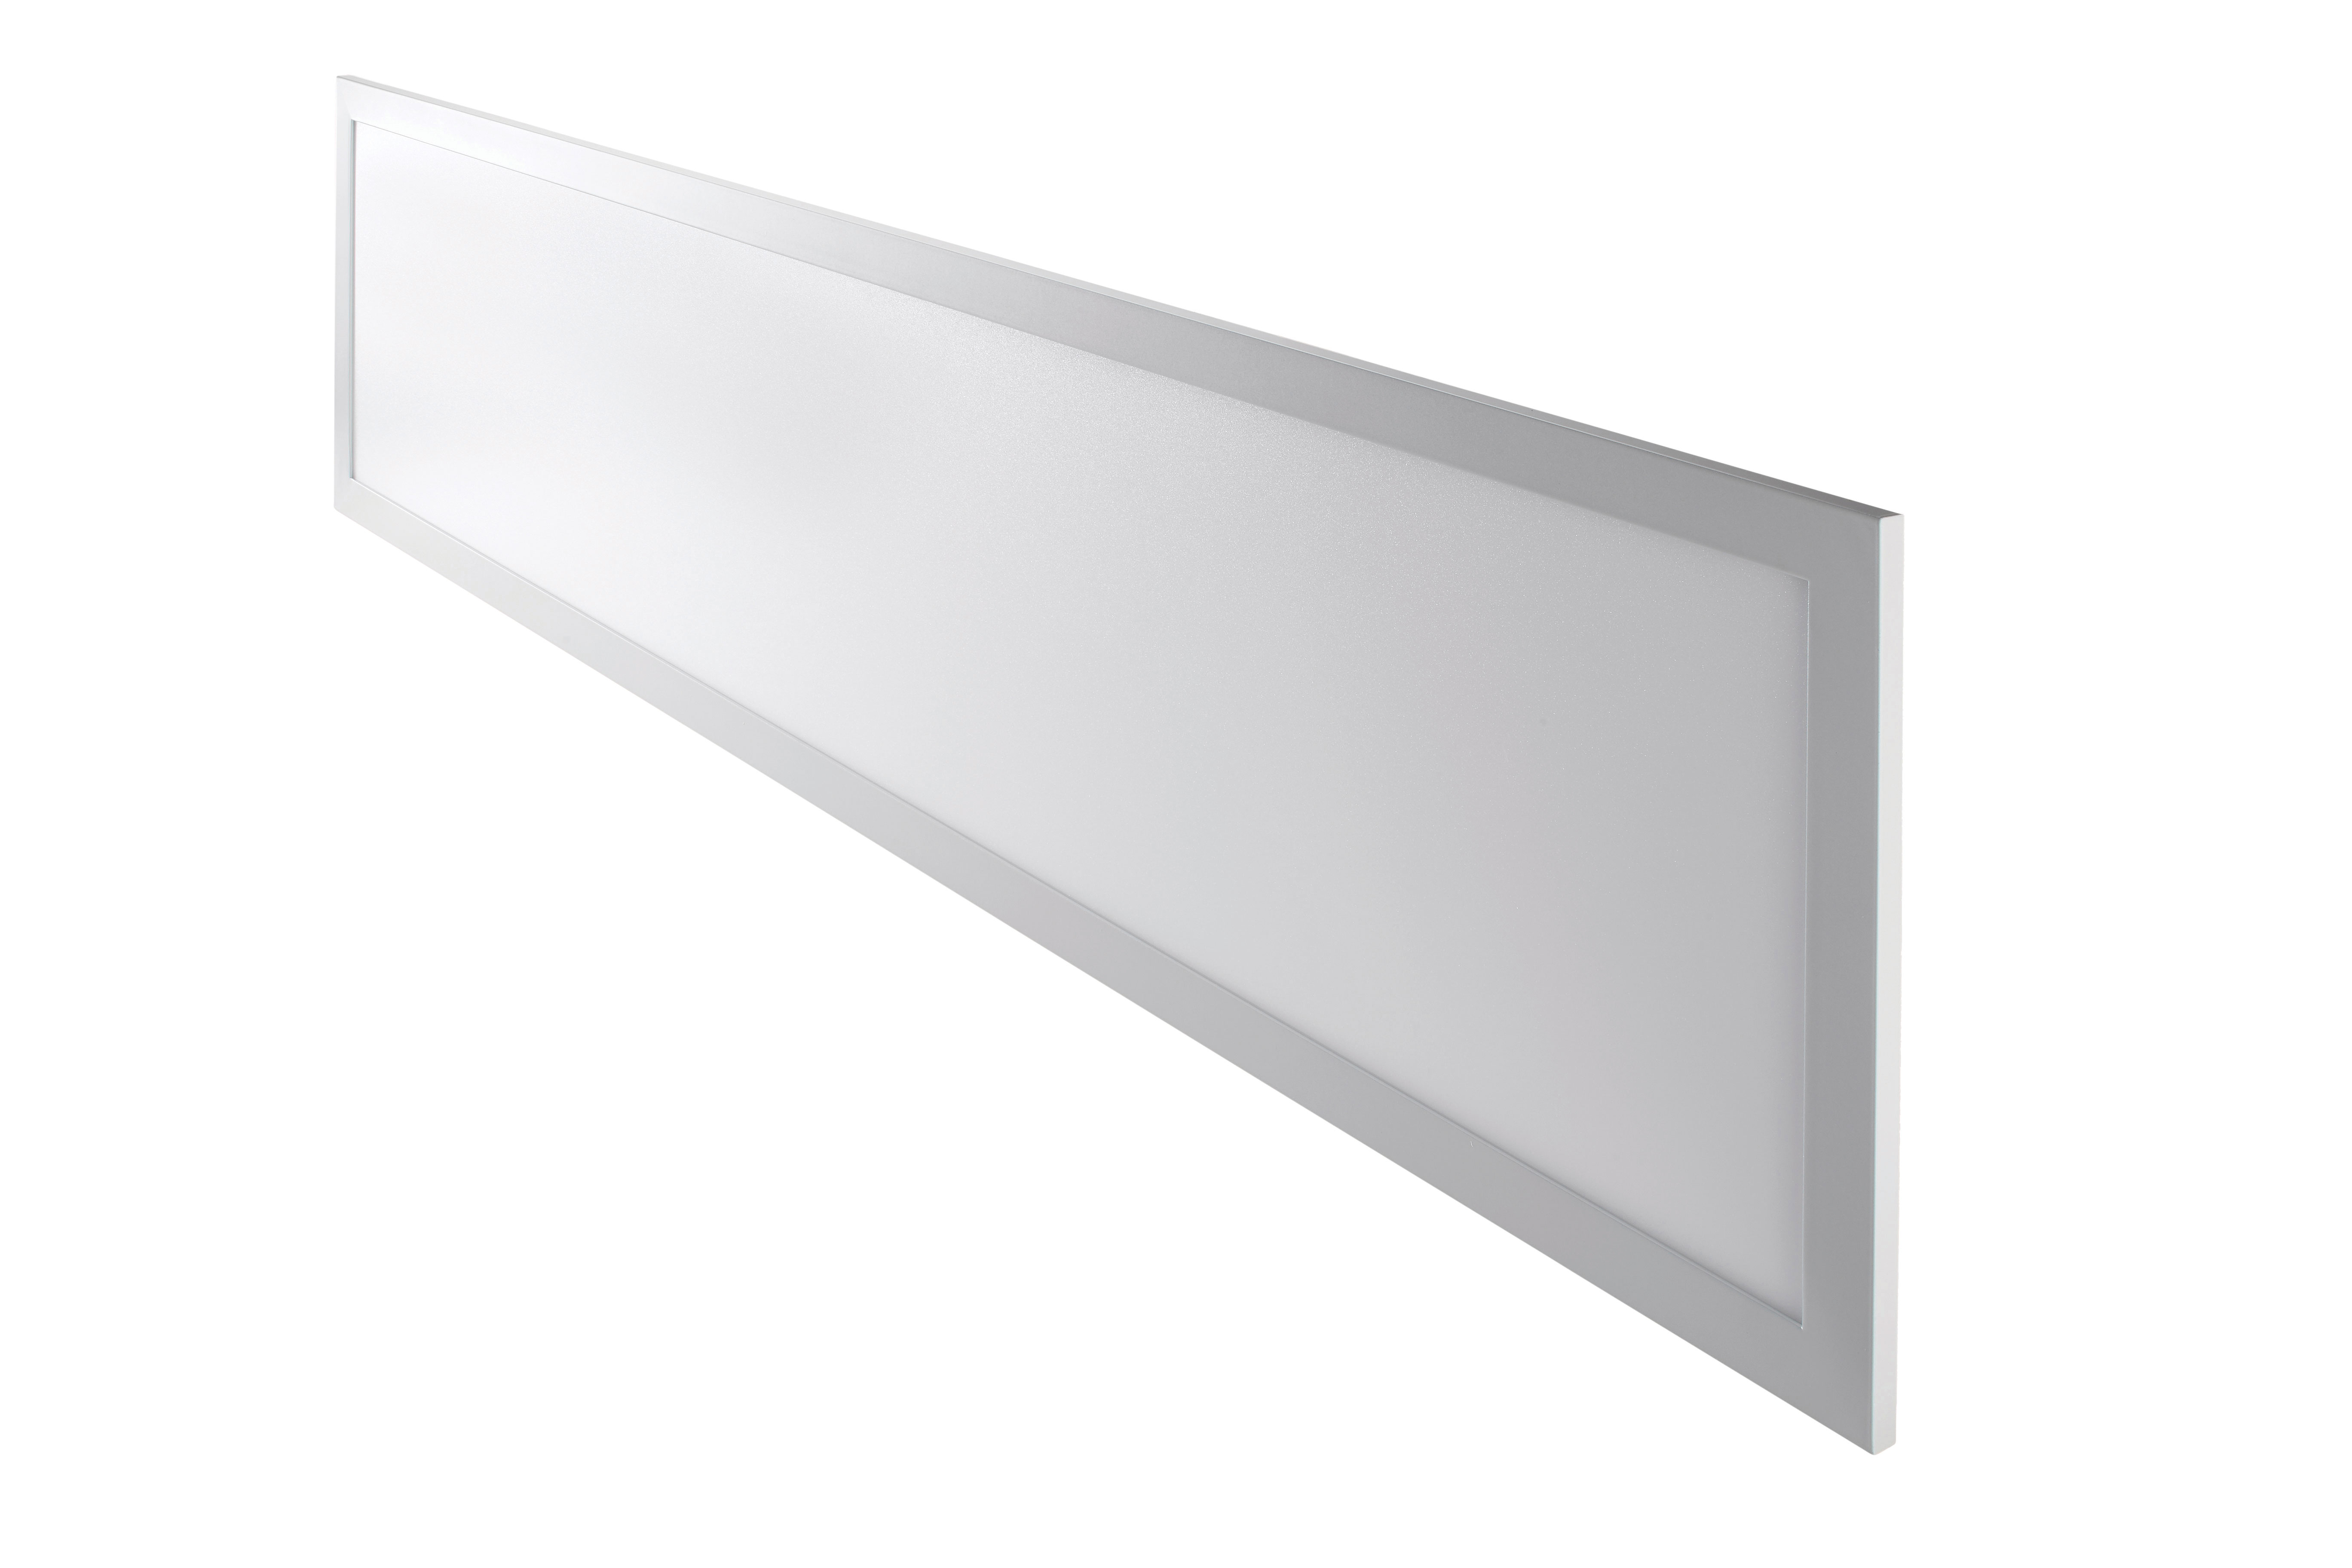 Aurea Lighting's LED Panel Light